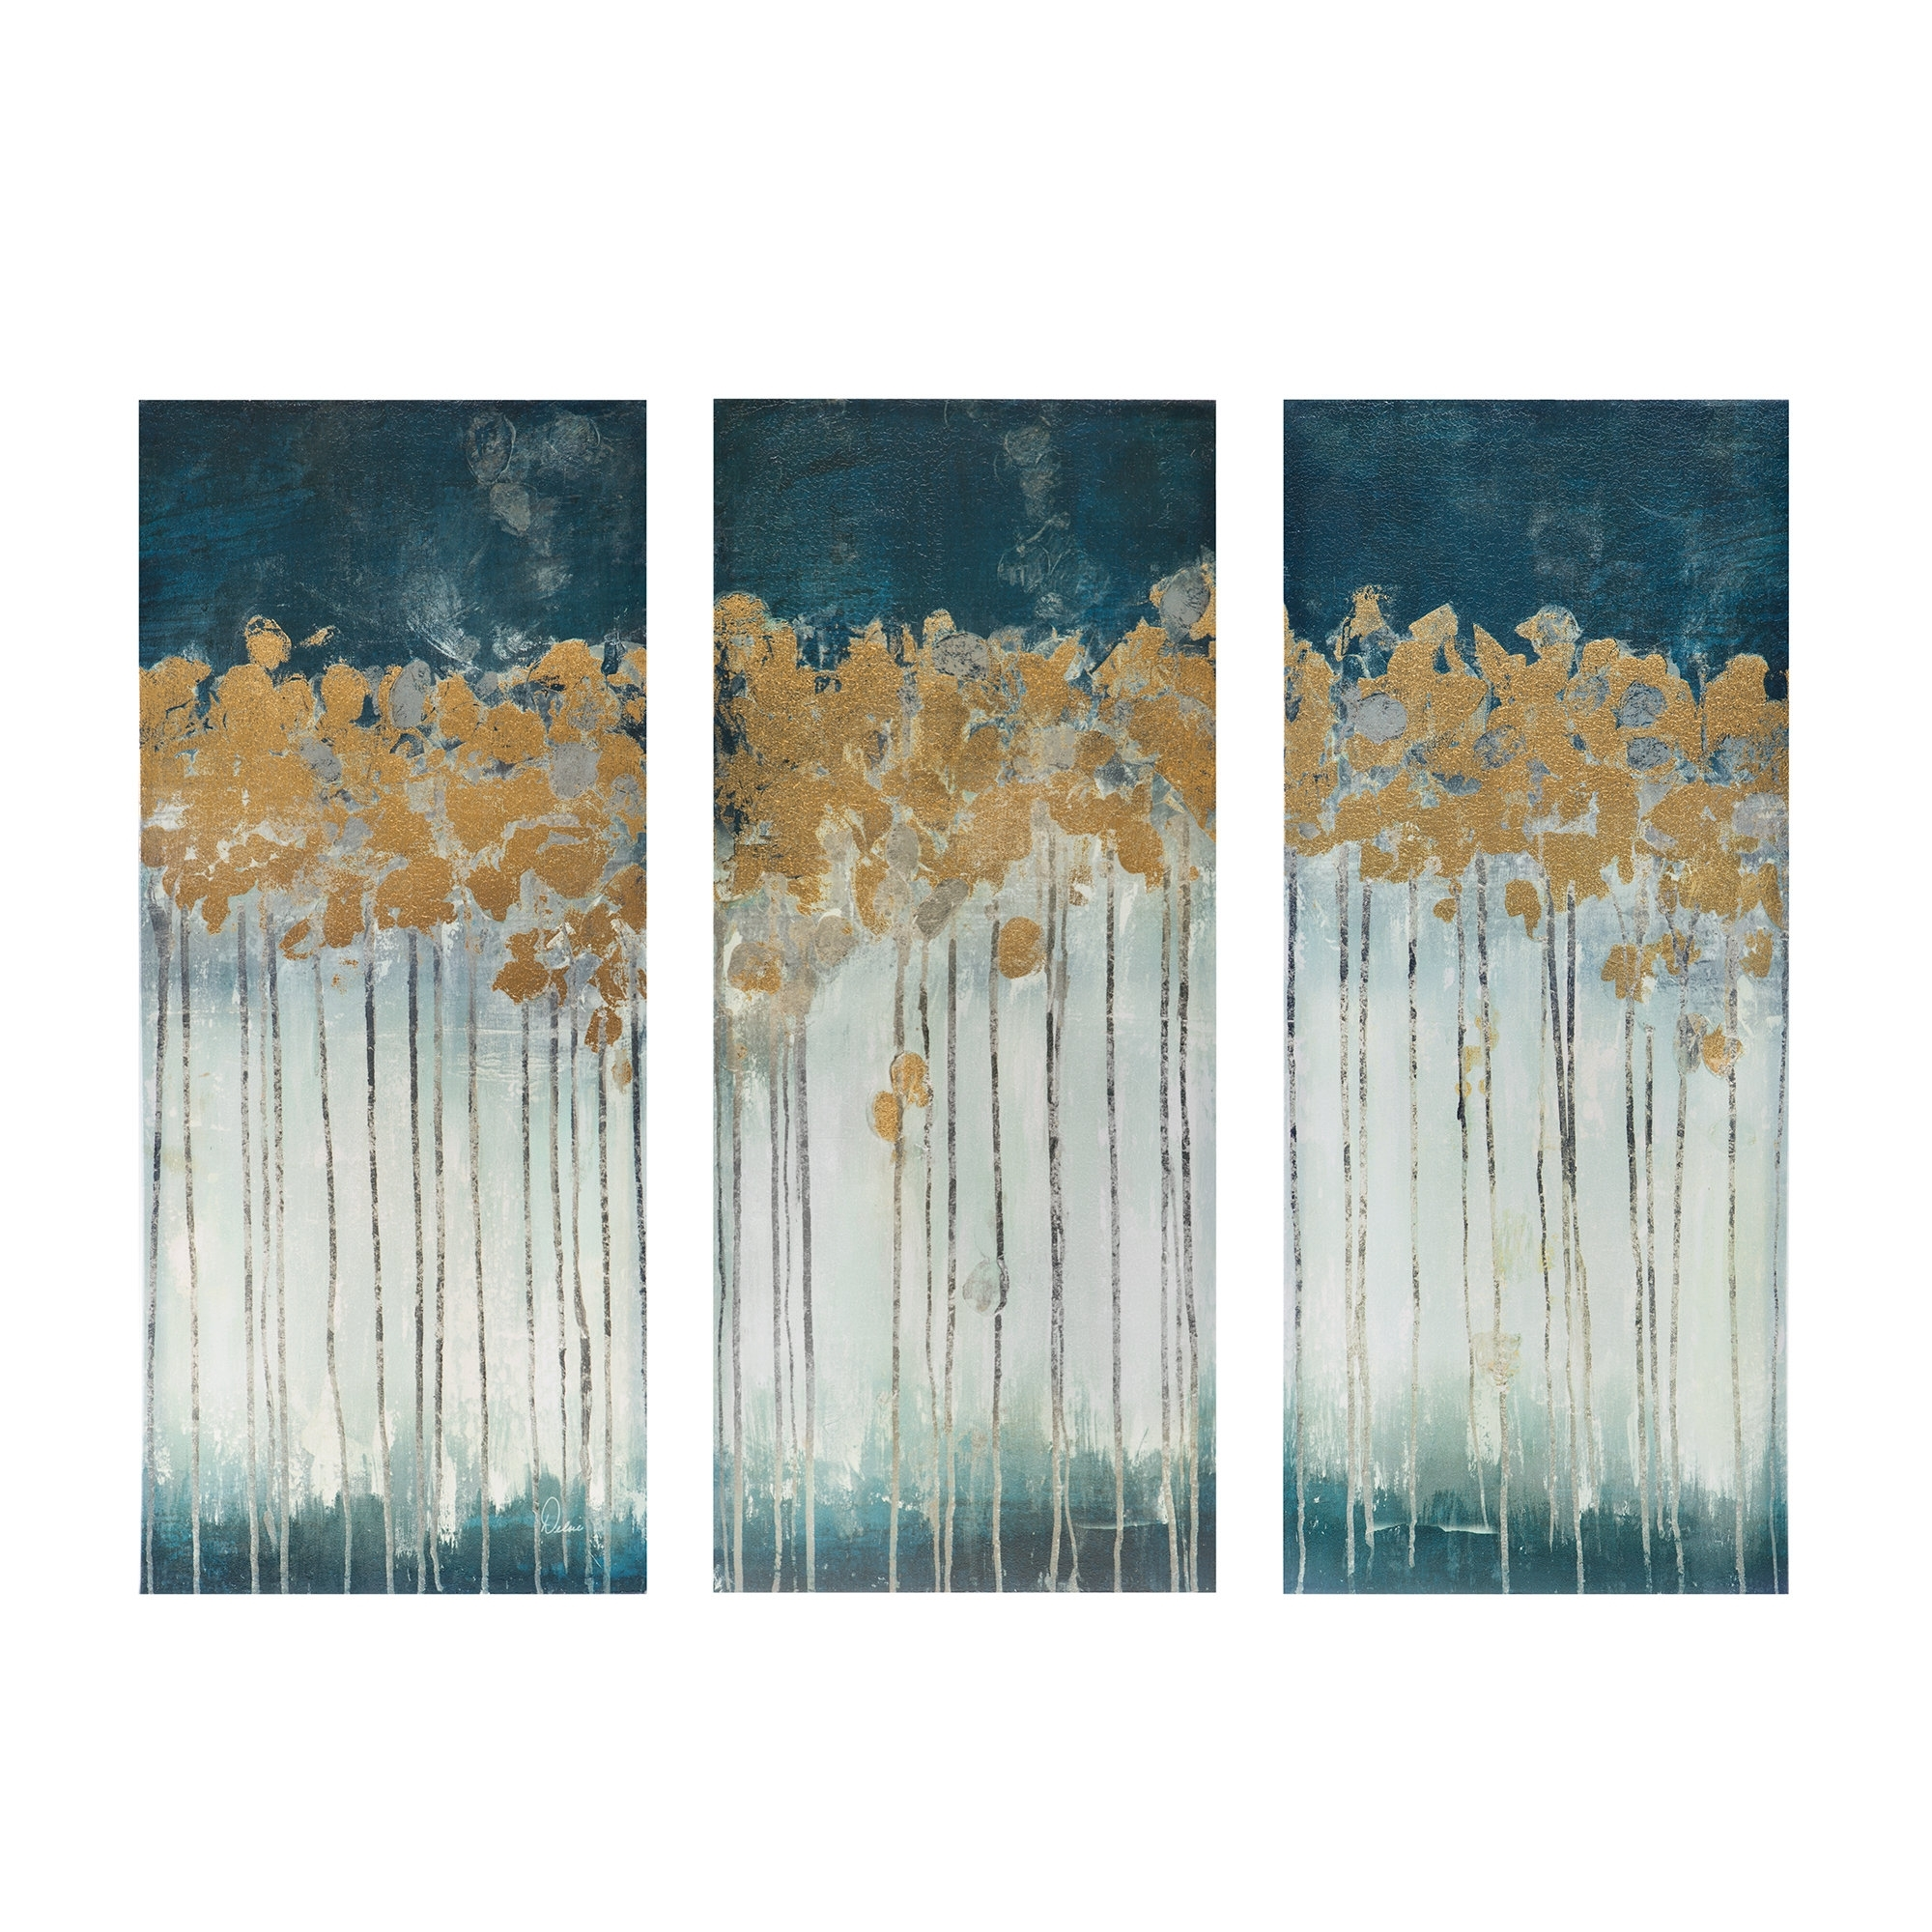 Midnight Forest' Gel Coat Canvas Wall Art With Gold Foil With Newest Gold Canvas Wall Art (Gallery 4 of 15)